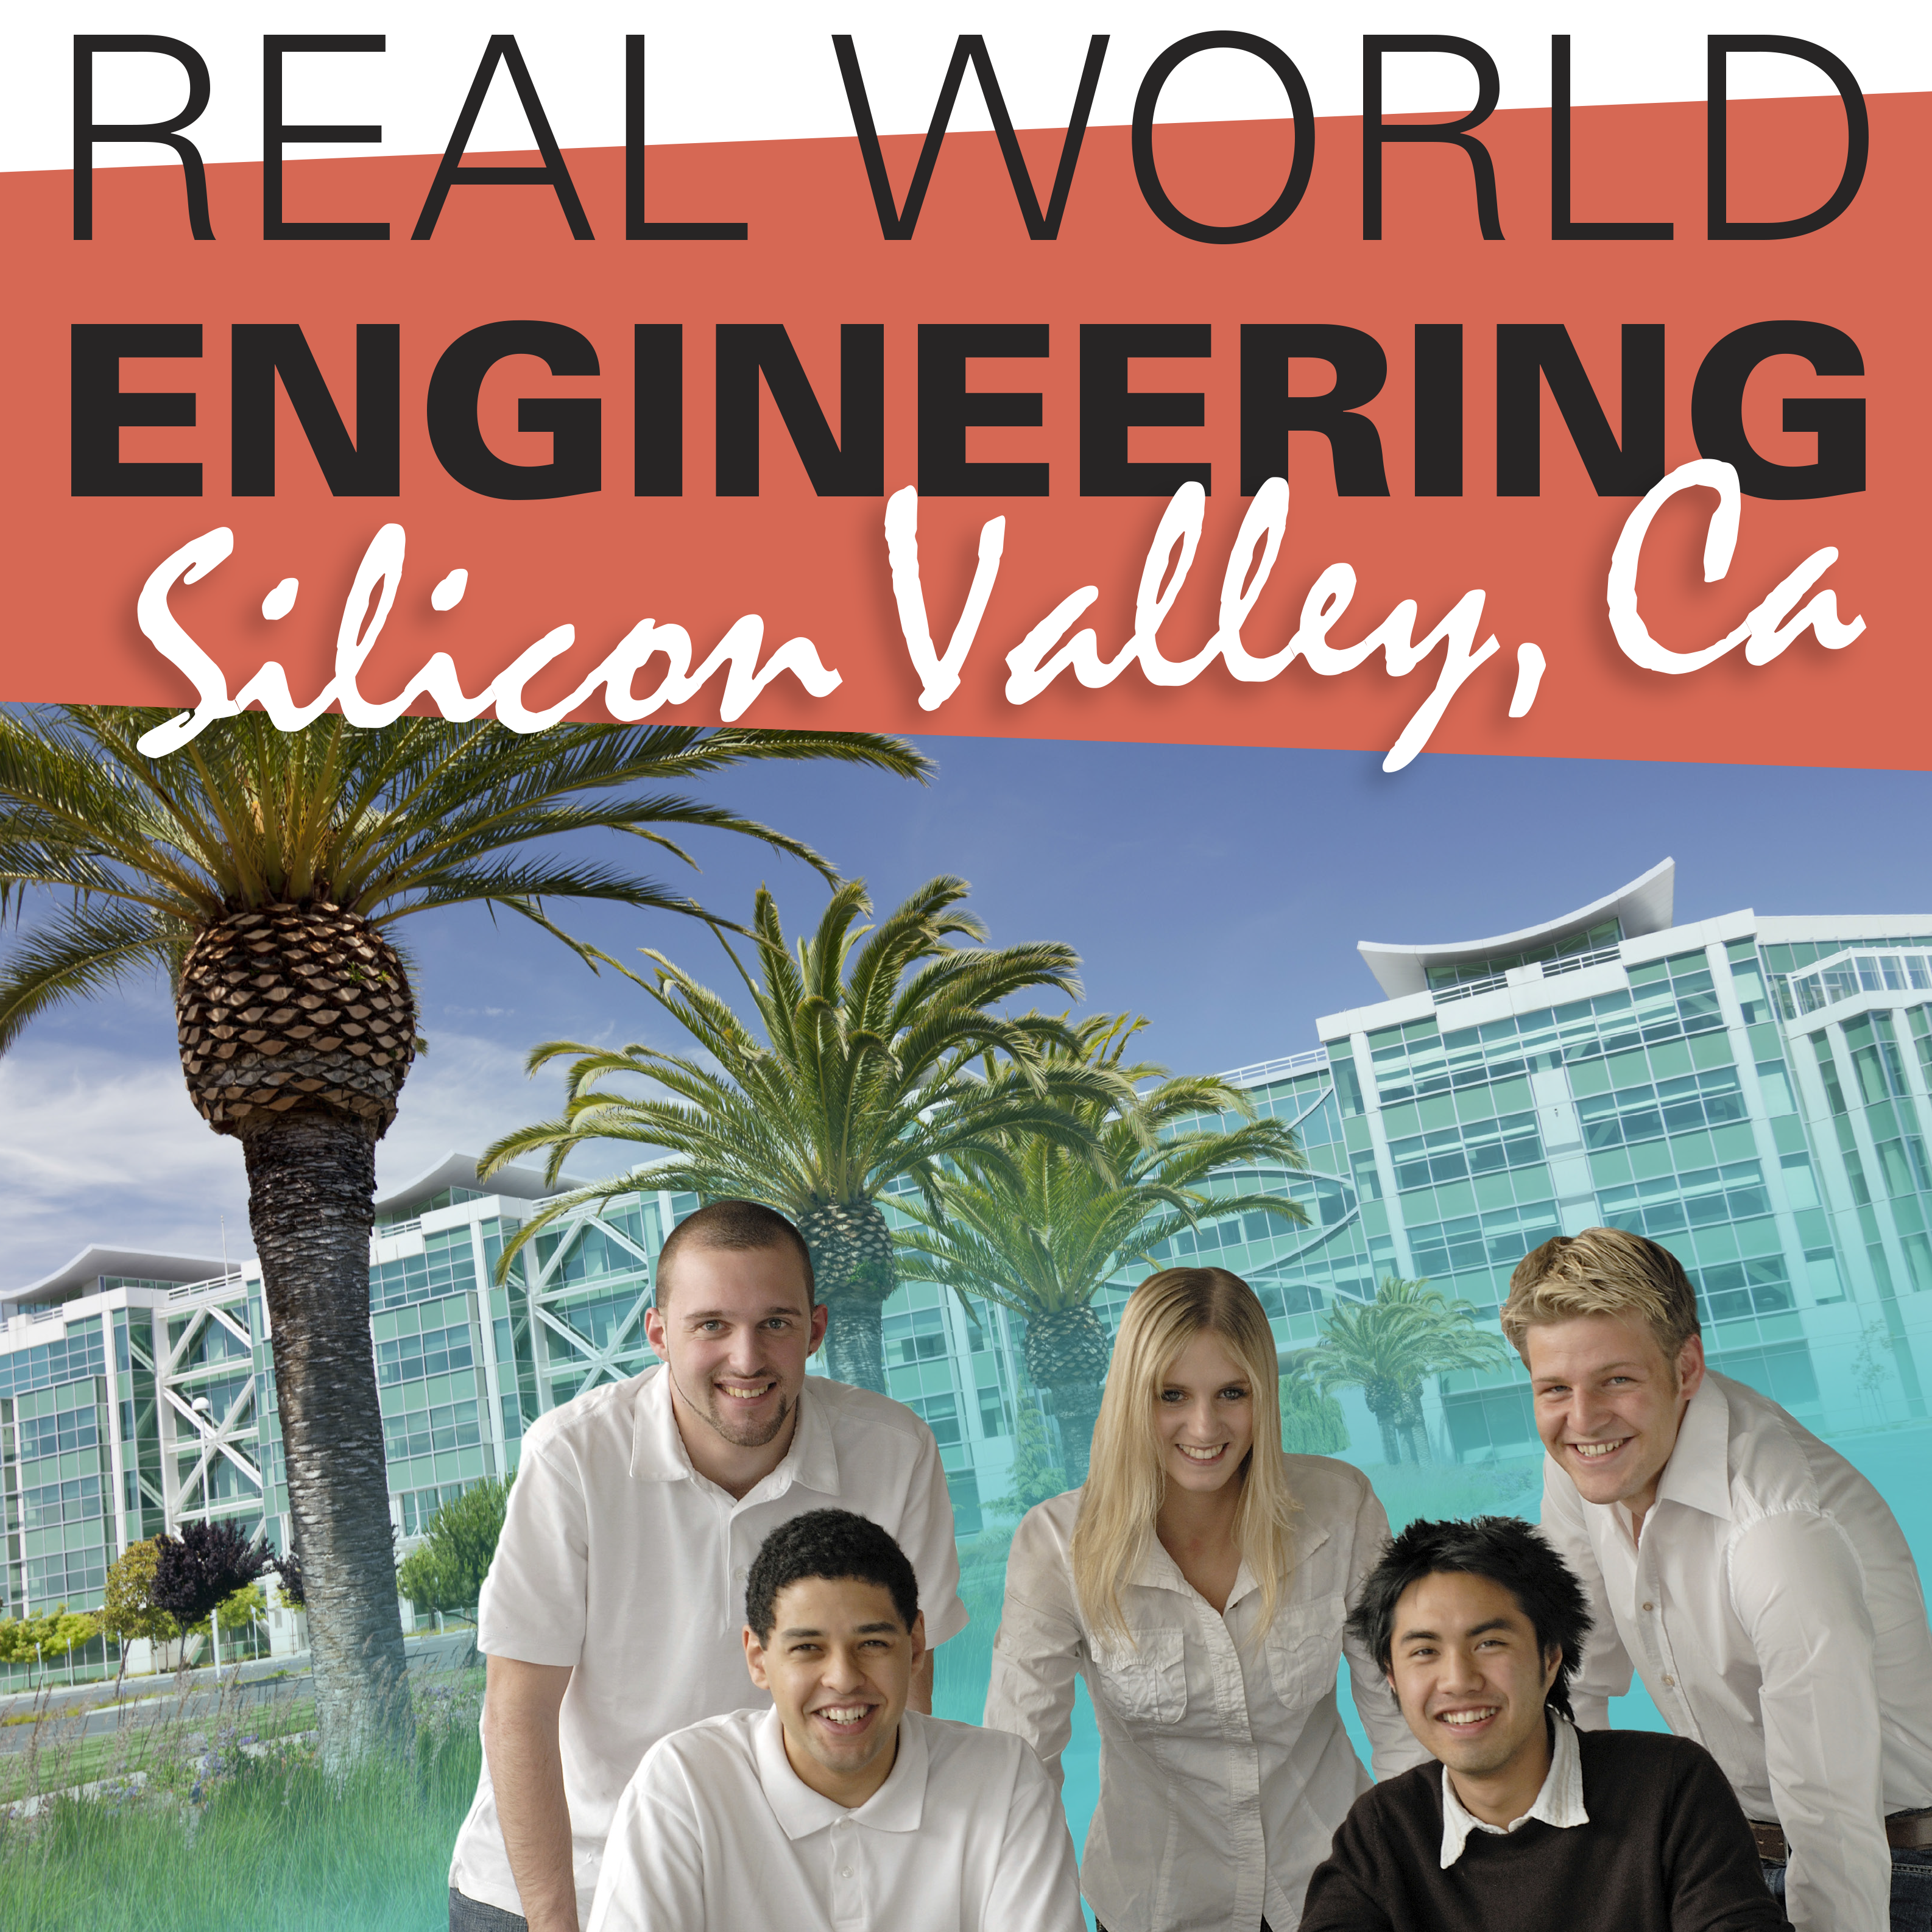 Real World Engineering - Silicon Valley